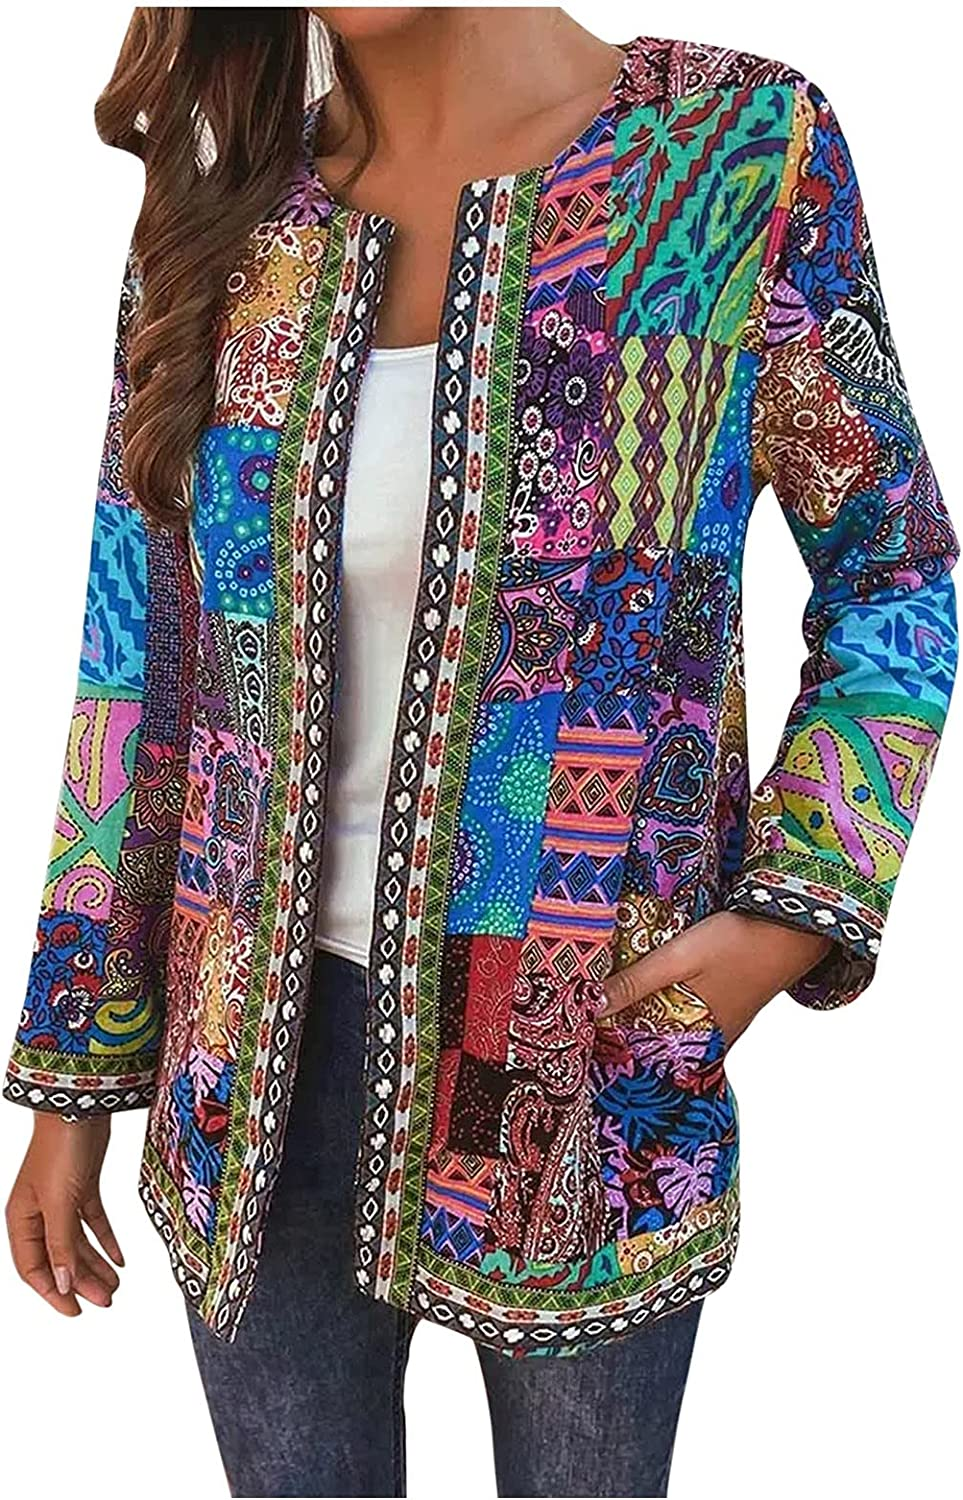 Women's Leisure Printing Coat Fall Loose Bohemian Cotton Linen Round Neck Open Front Jacket